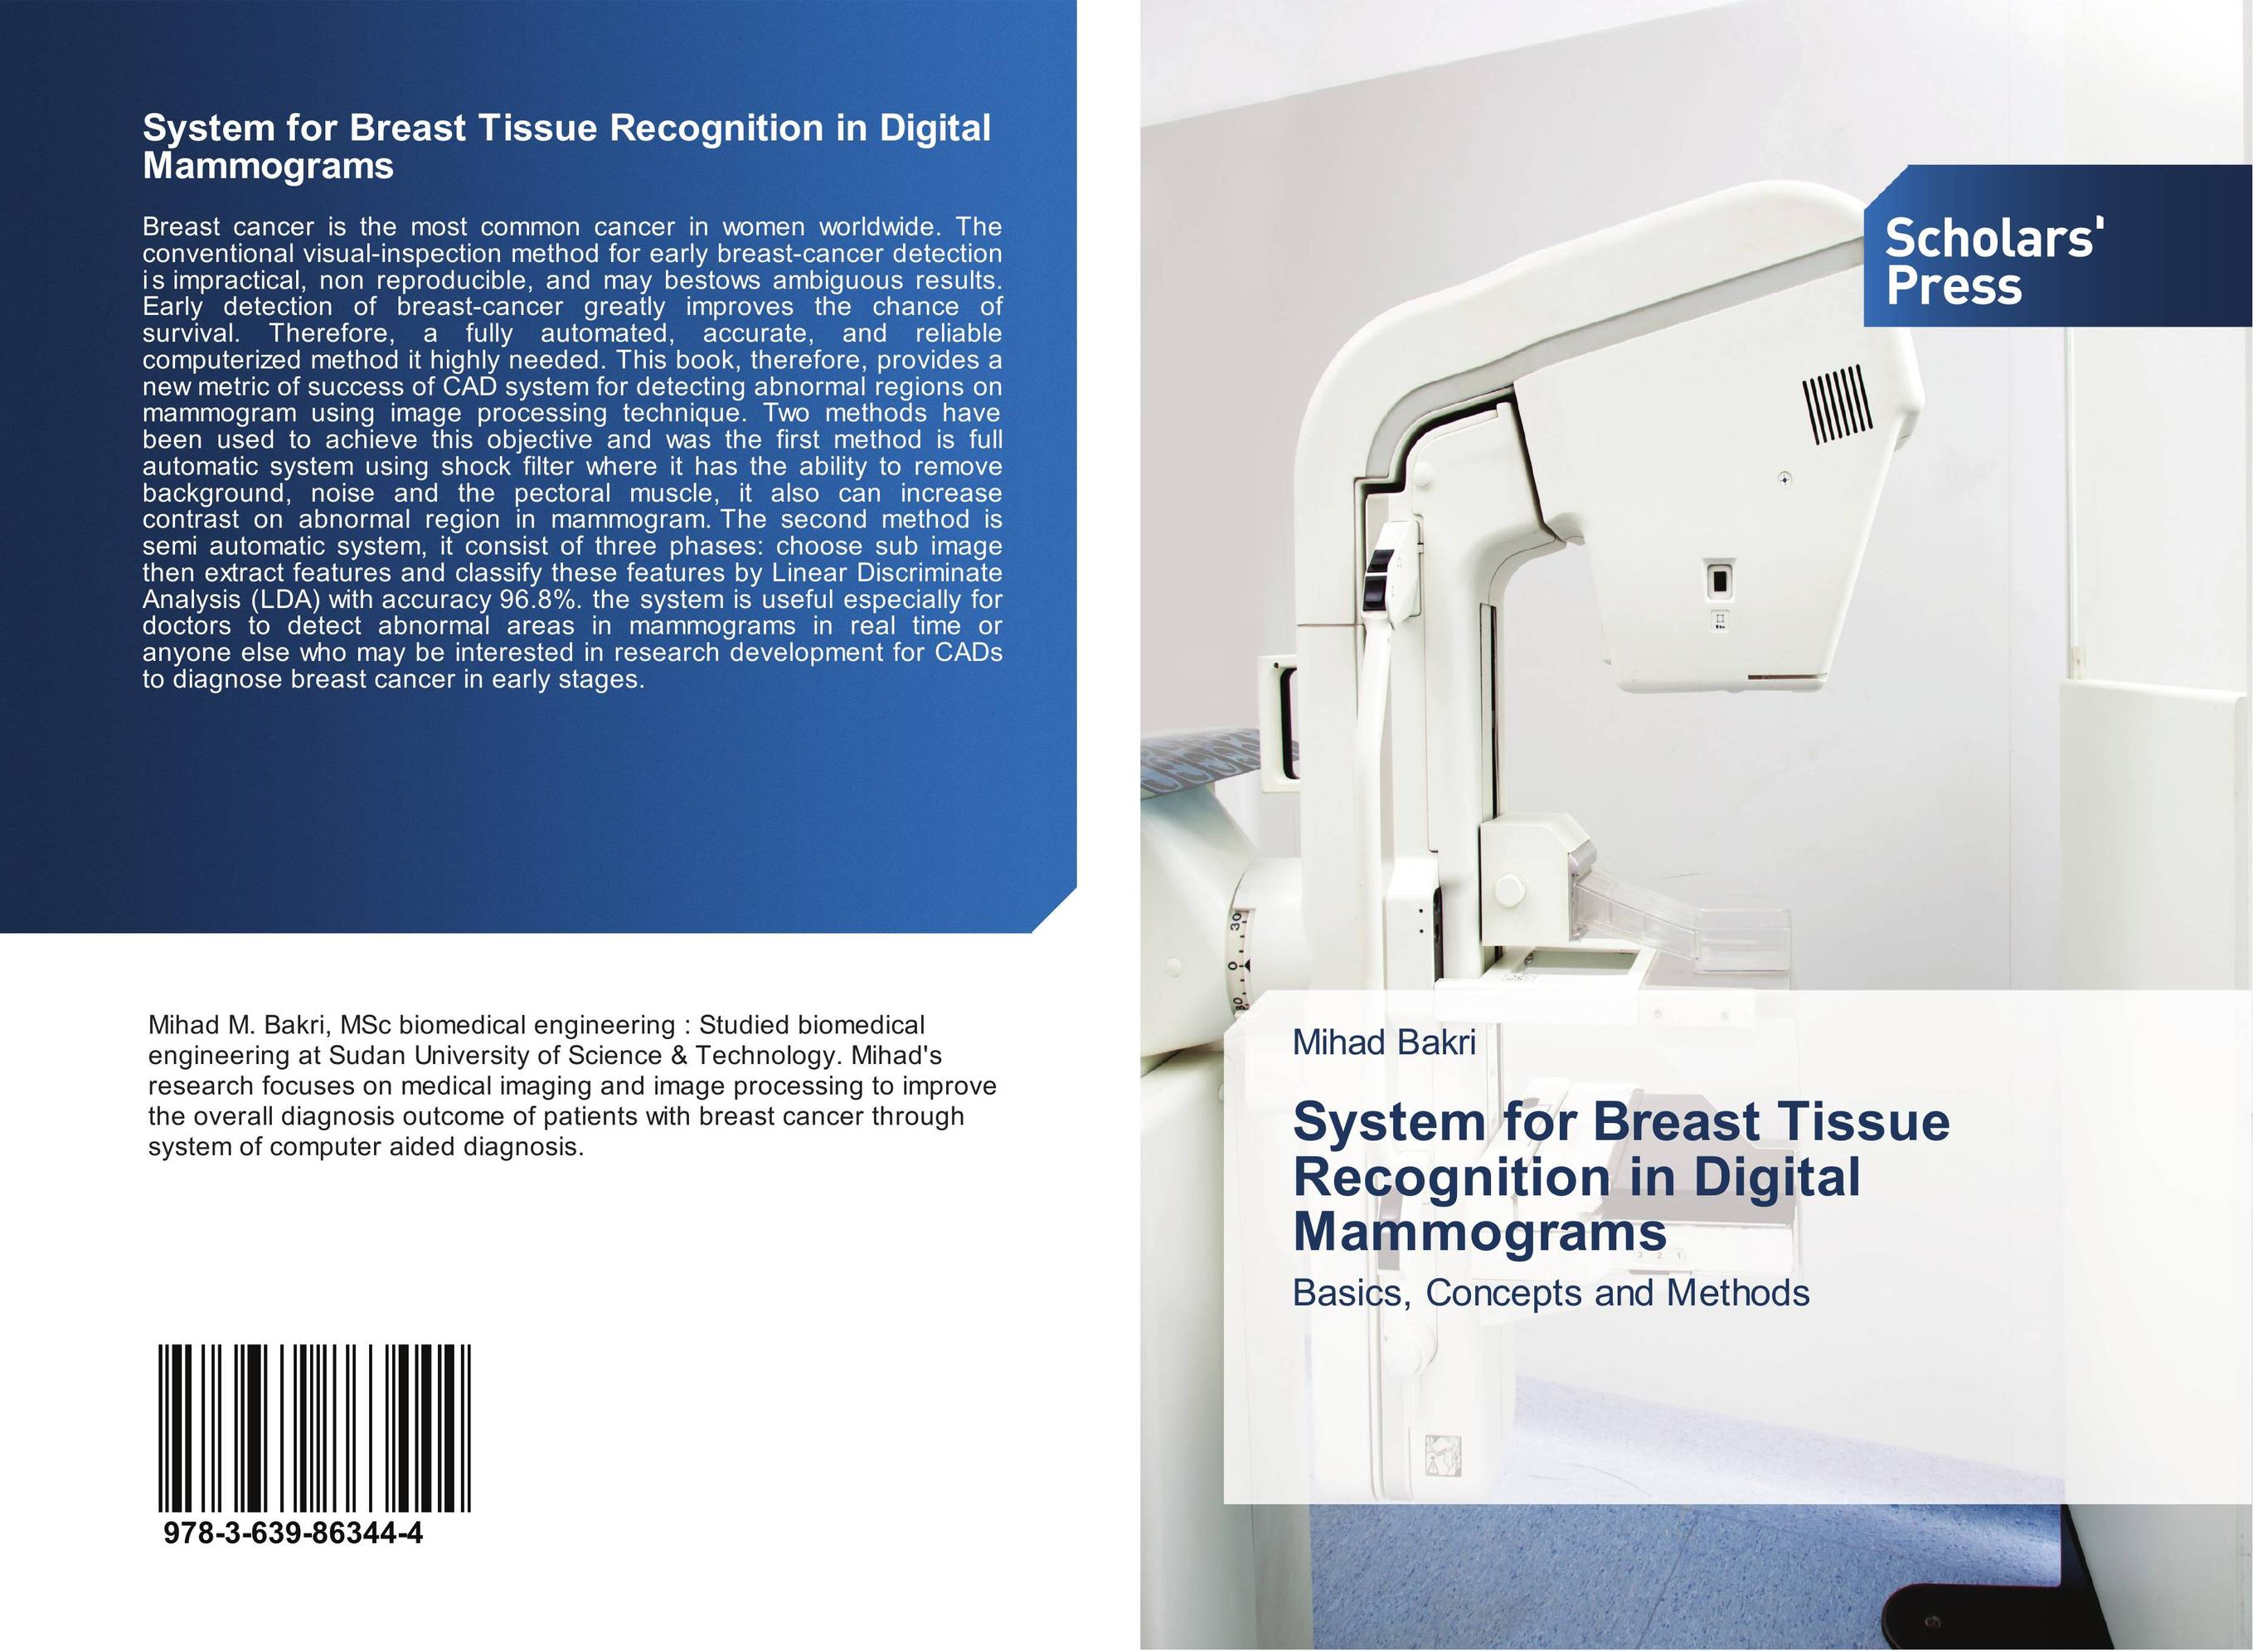 System for Breast Tissue Recognition in Digital Mammograms breast cancer detection device for the breast cancer awareness and detections of breast cancer